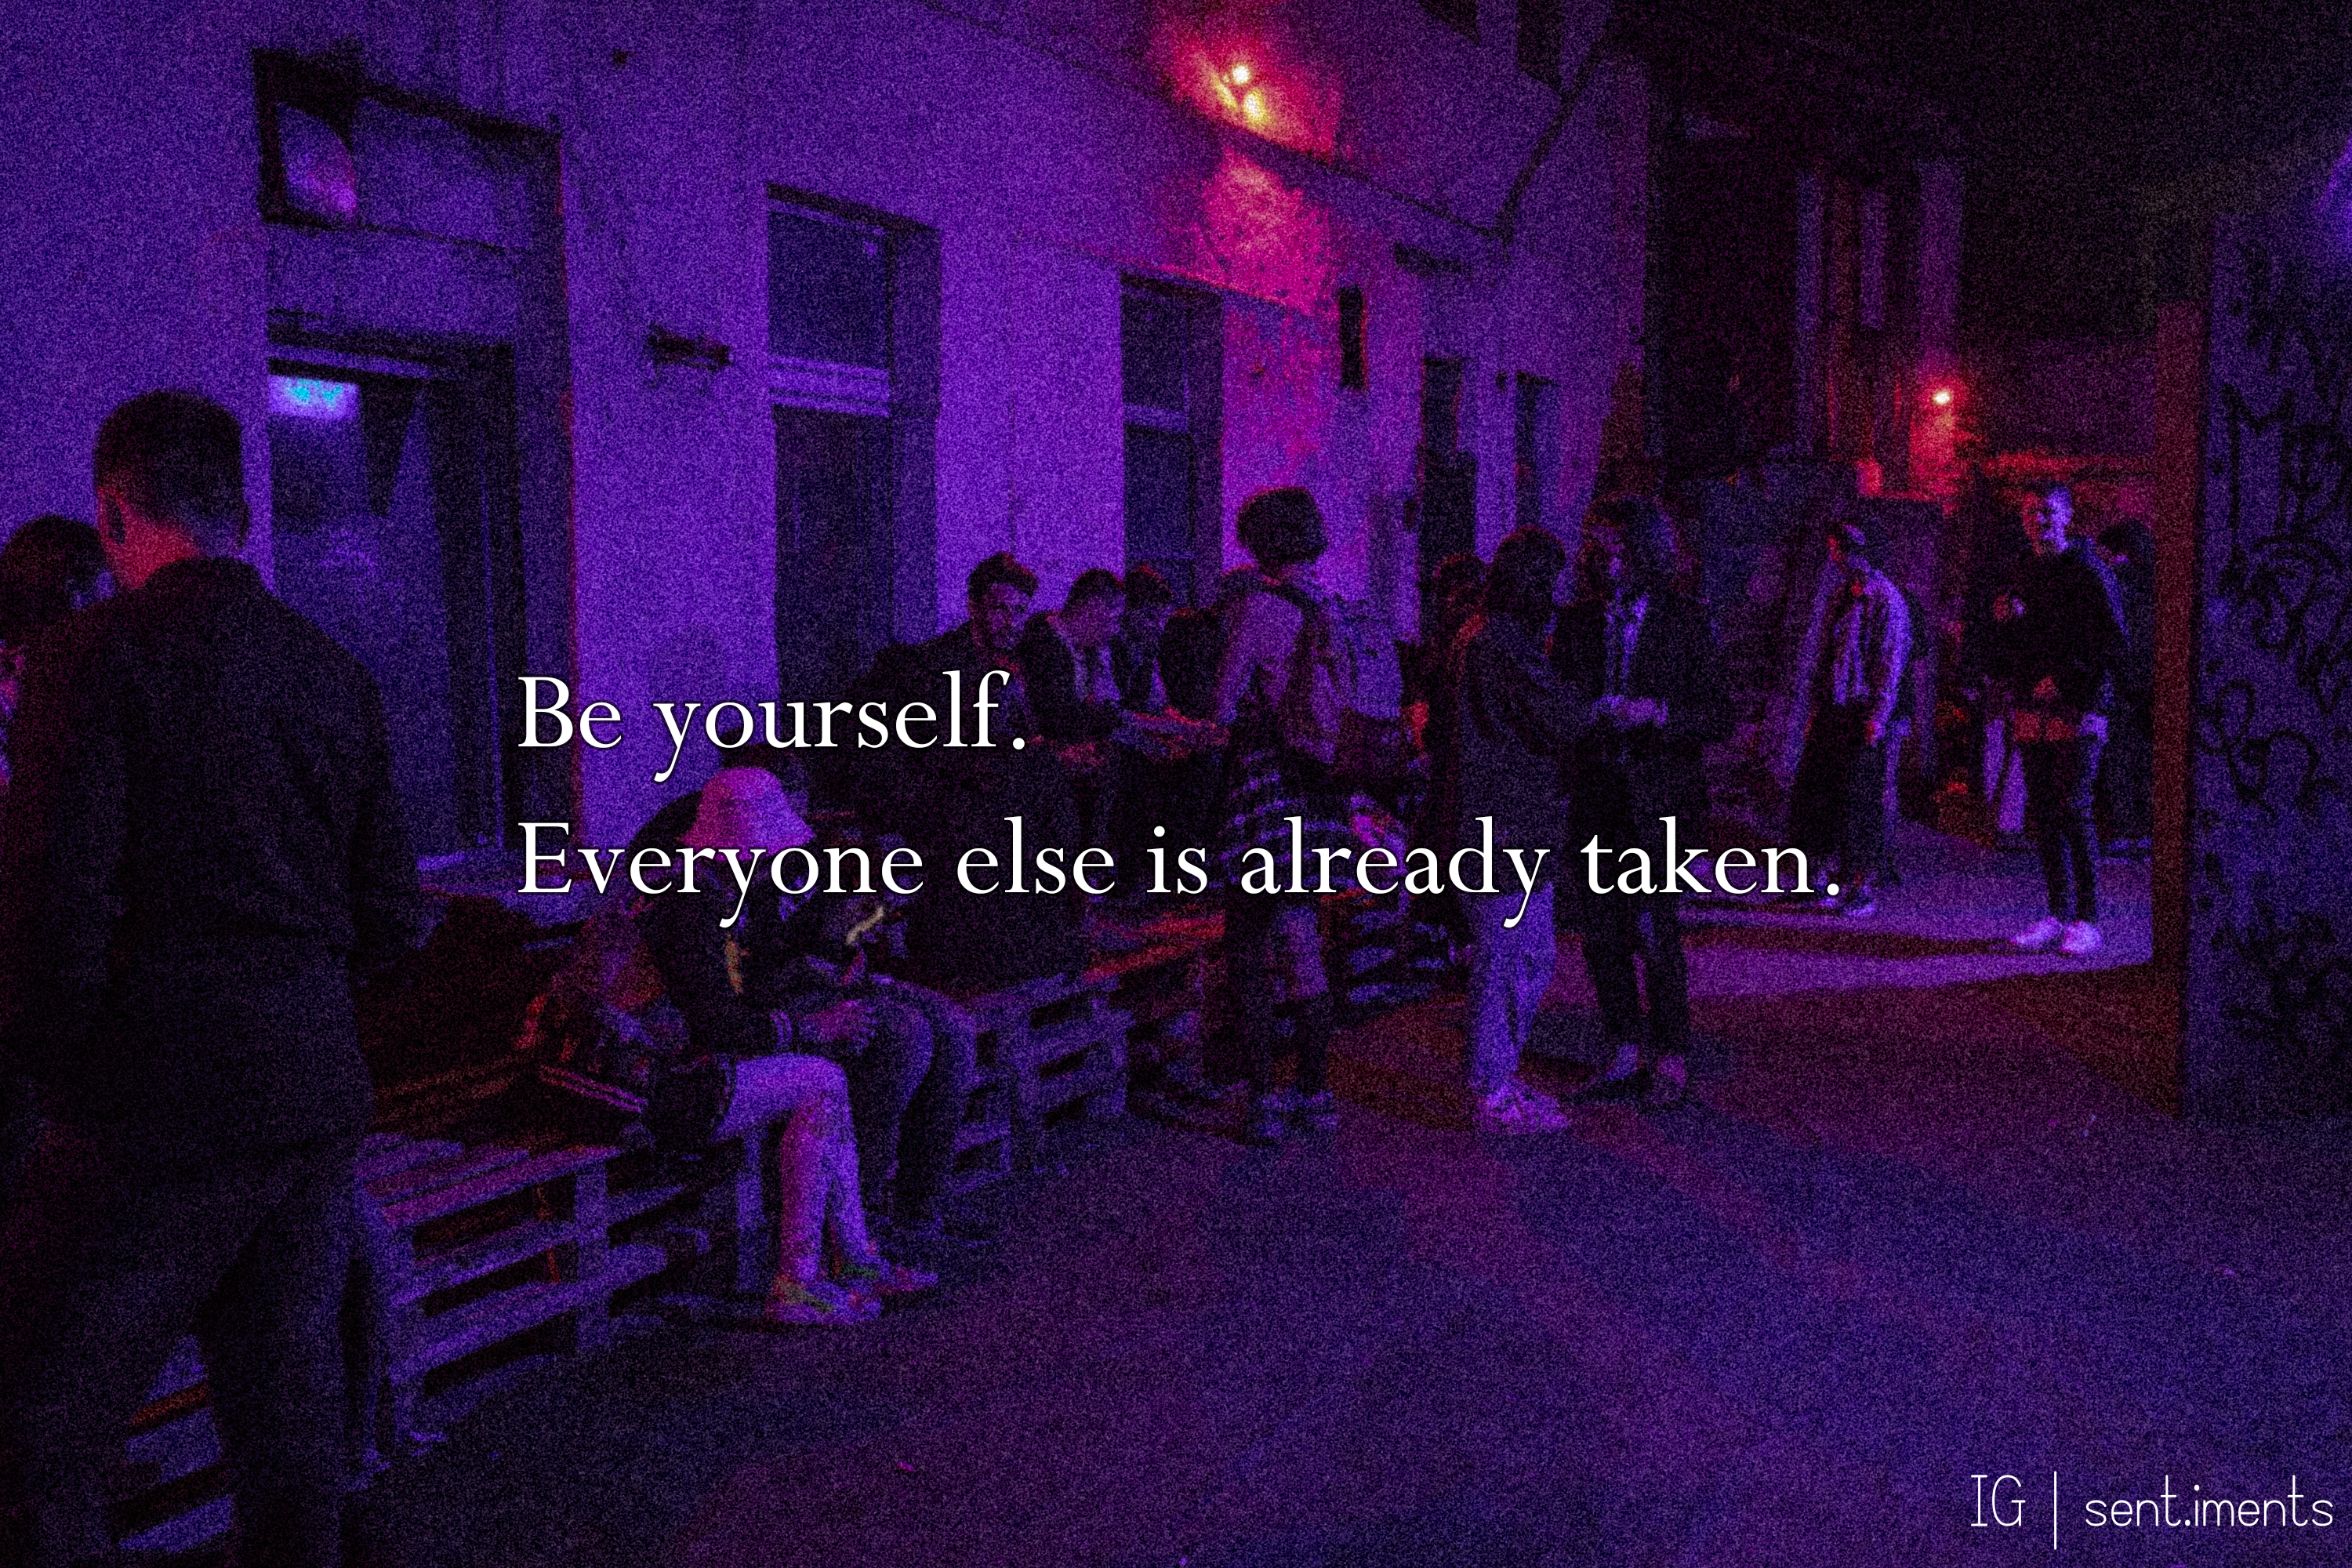 """Be yourself. Everyone else is already taken."" by Oscar Wilde [3000 X 2000]"